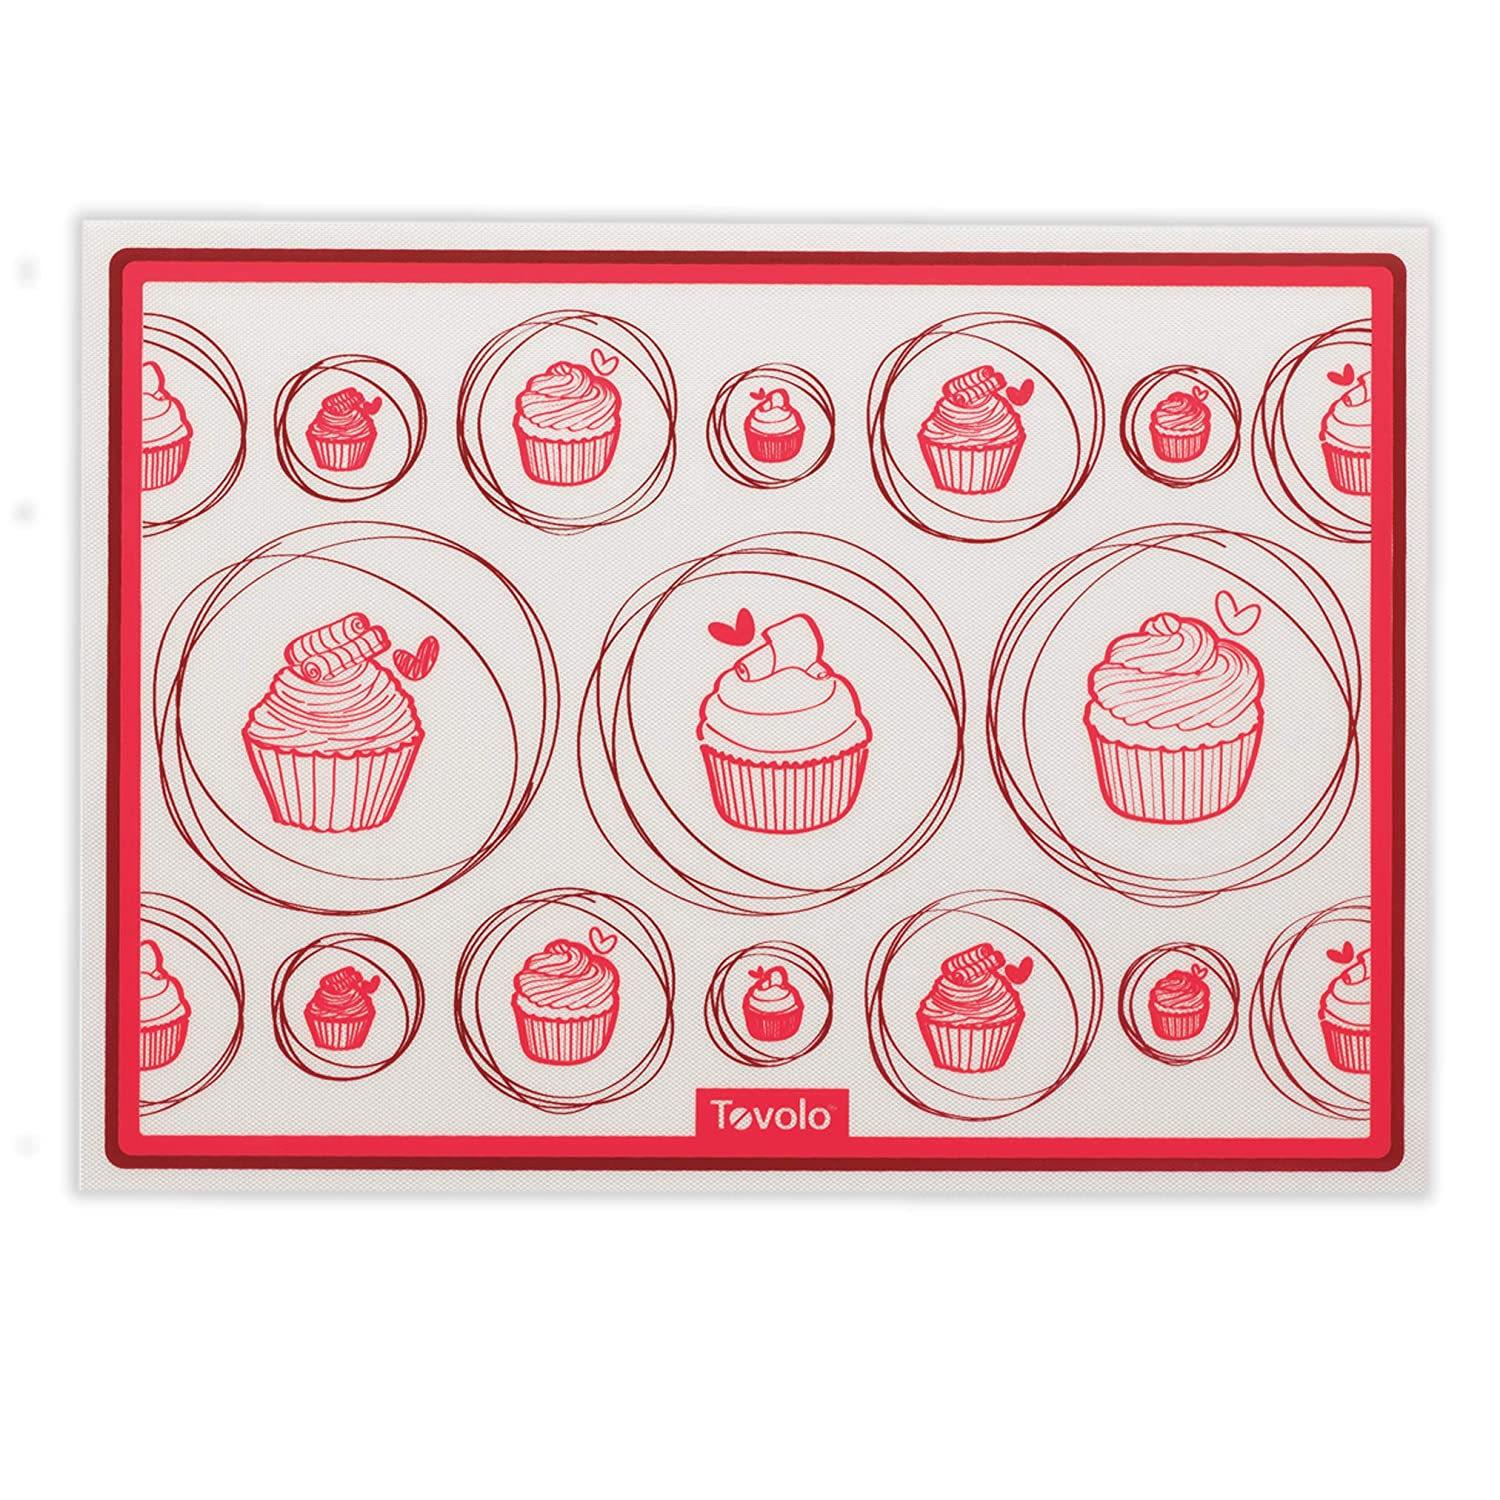 Tovolo Silicone Toaster Oven Baking Mat, Non-Stick, No-Burn Baking, Heat-Resistant to 600ᴼF